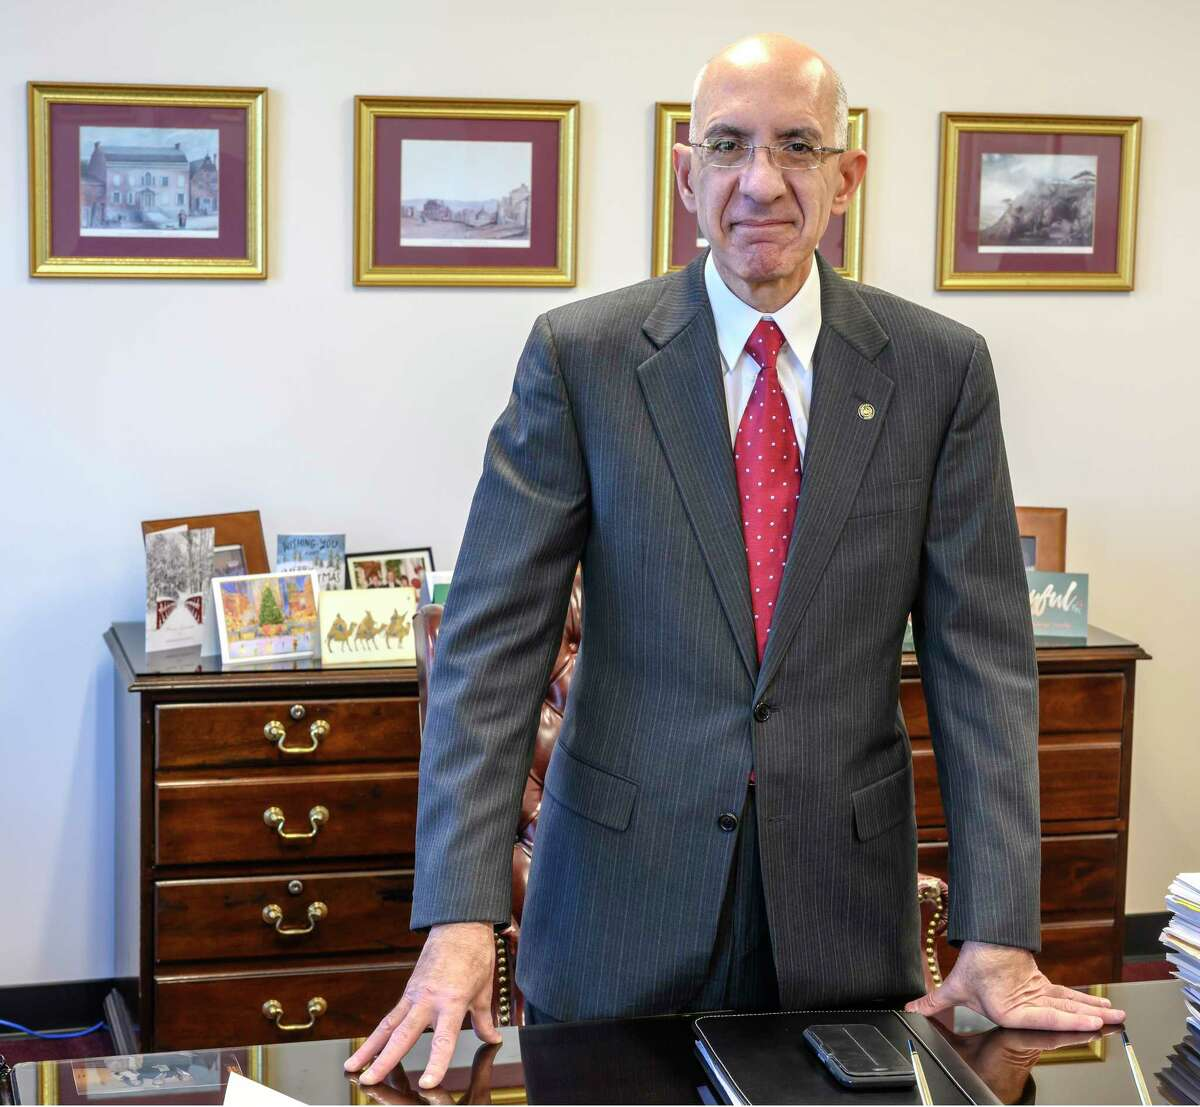 Phil Calderone in his office Tuesday Dec. 18, 2018 in Albany, N.Y. (Skip Dickstein/Times Union)